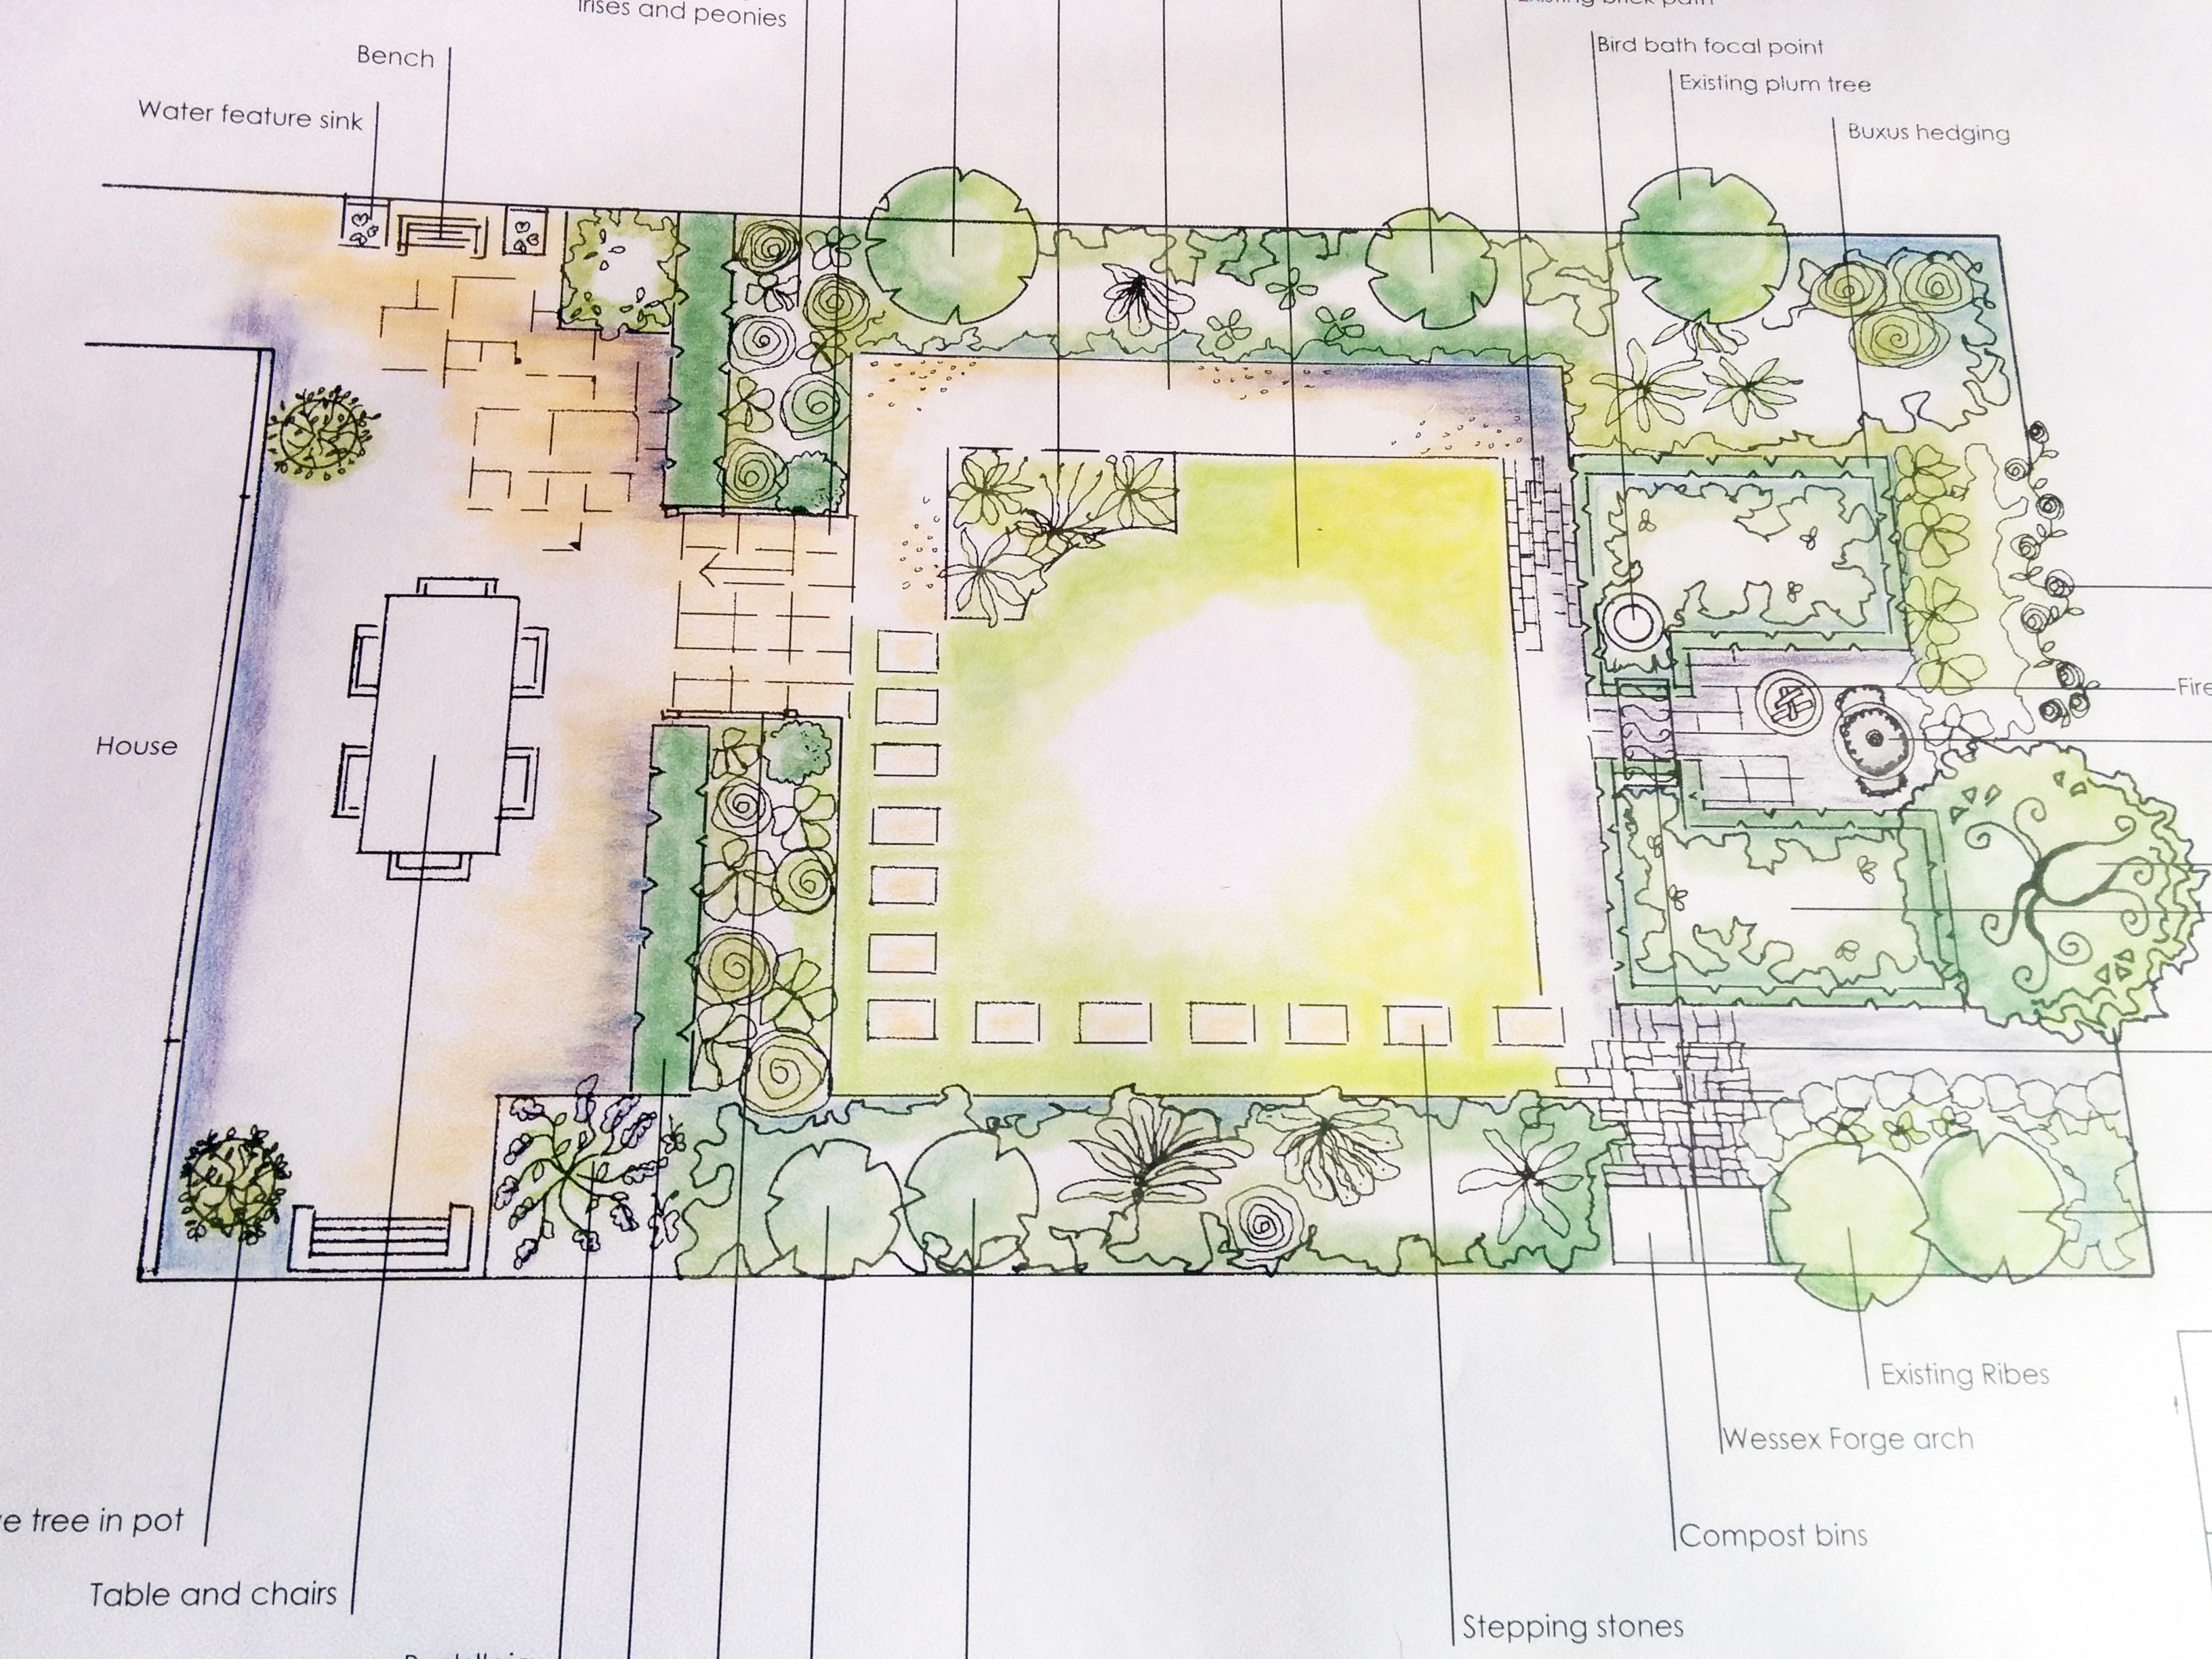 catherine dixons garden designs are drawn to scale and show hard landscaping and garden features from a birds eye view